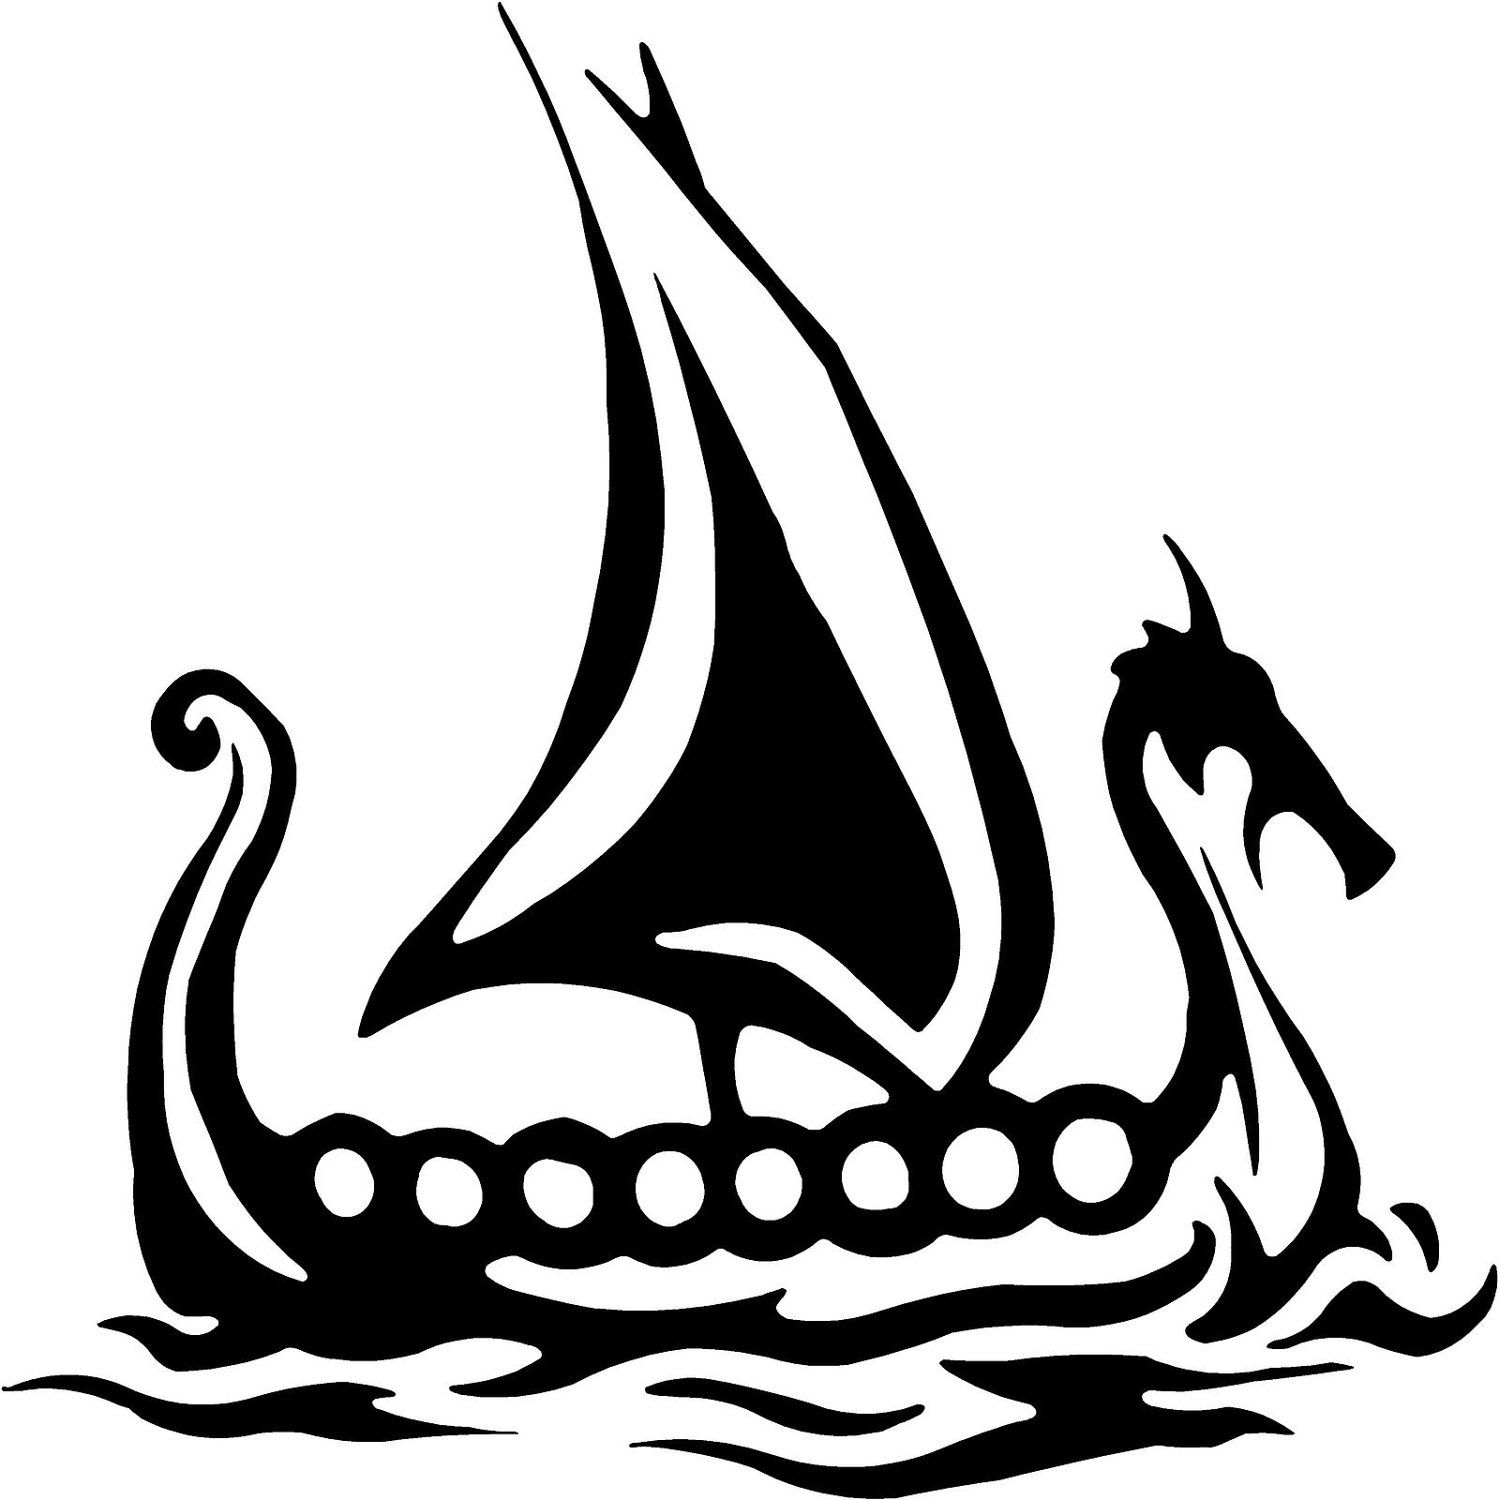 Viking Ship Drawing | tattoos and Tattoo ideas | Pinterest ...